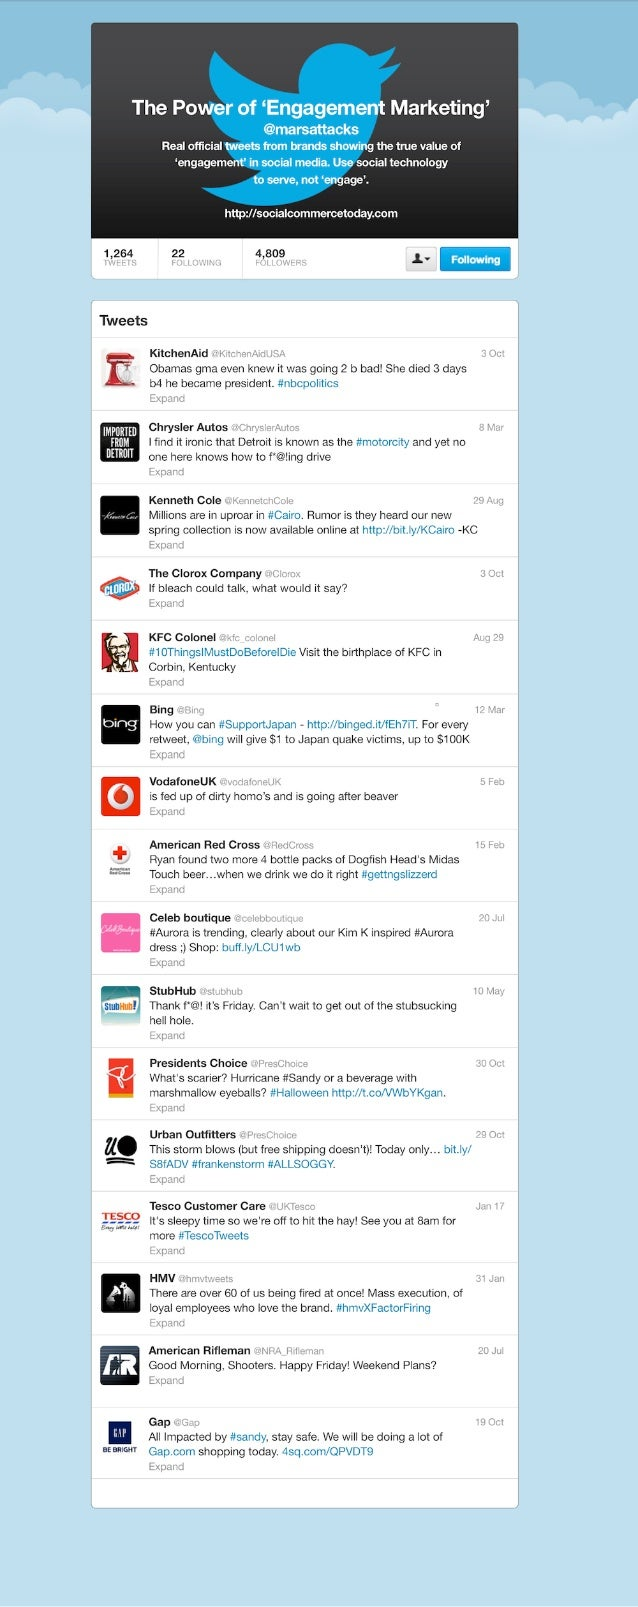 Collaborative IQ with Denise Holt - INFOGRAPHIC – Brand Twitter Fails